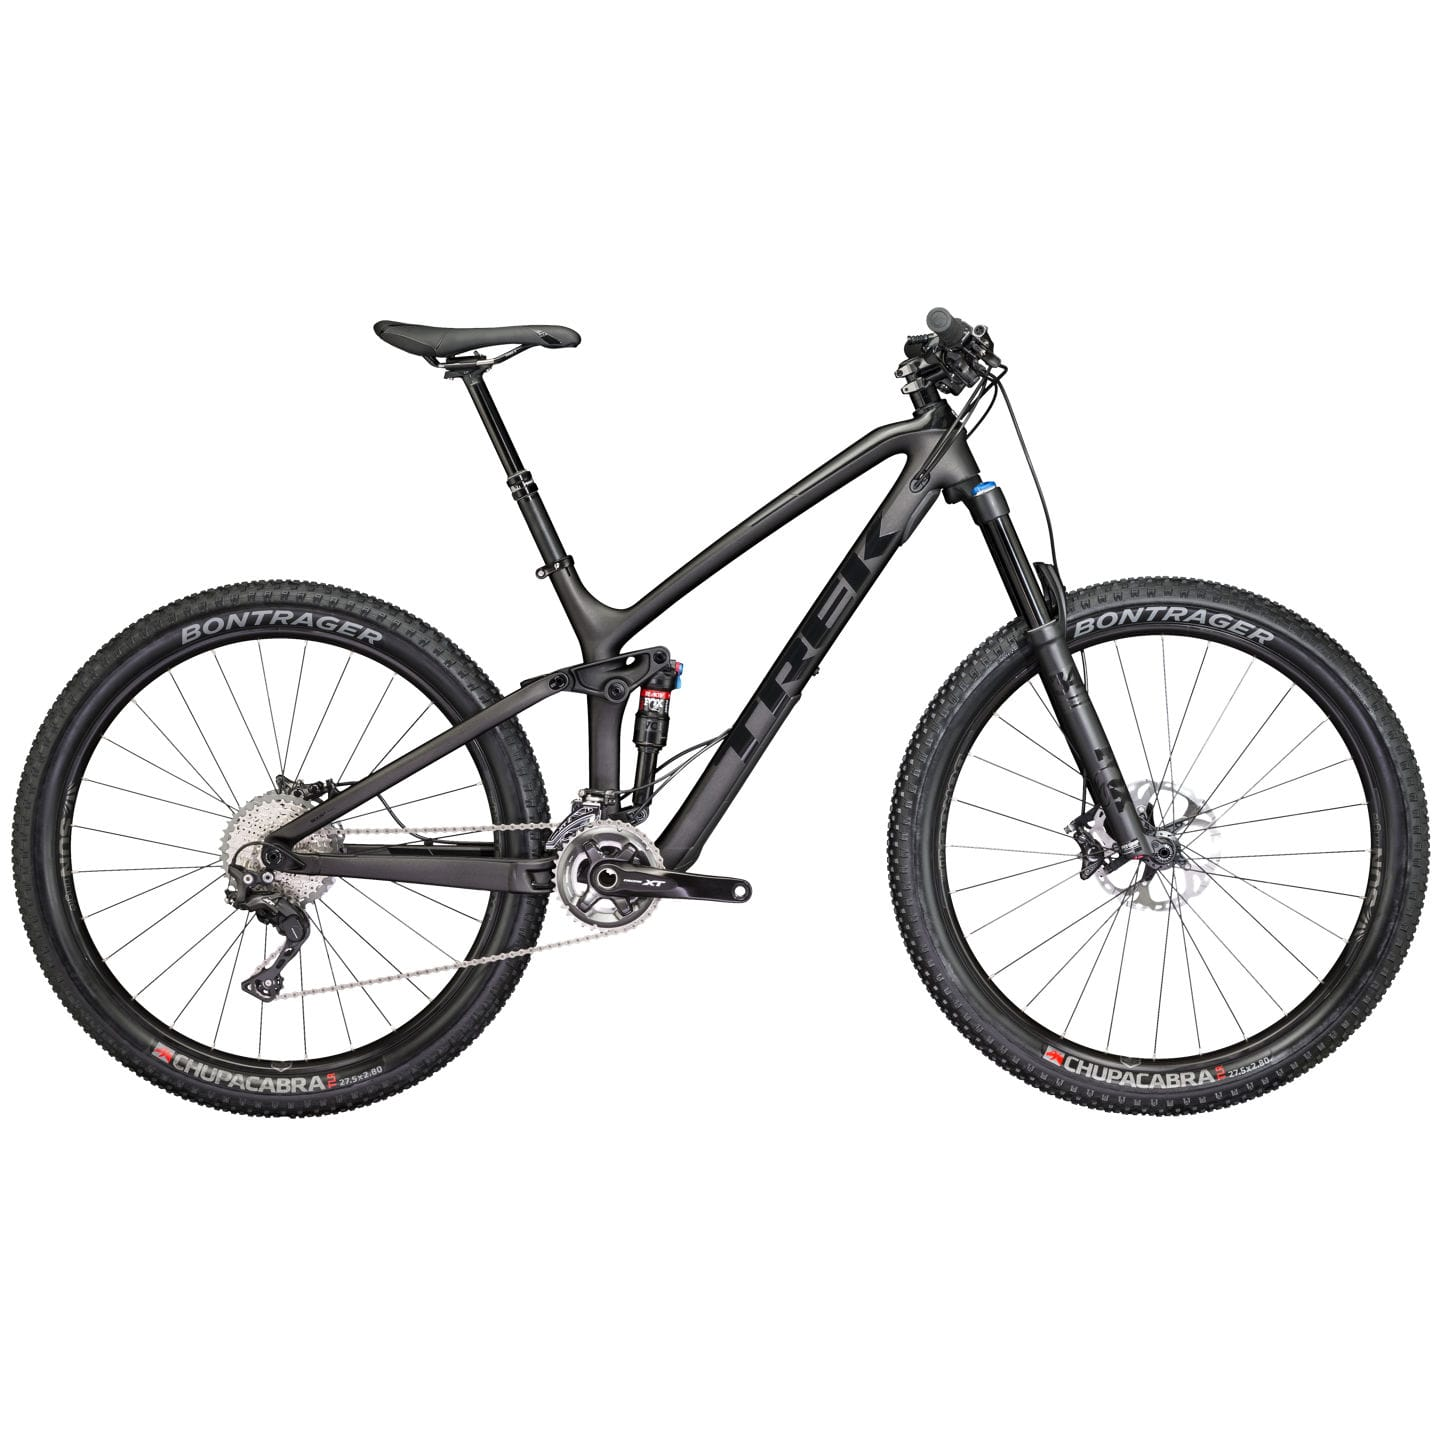 Trek Fuel Ex 9 8 27 5 Plus Mtb Bike